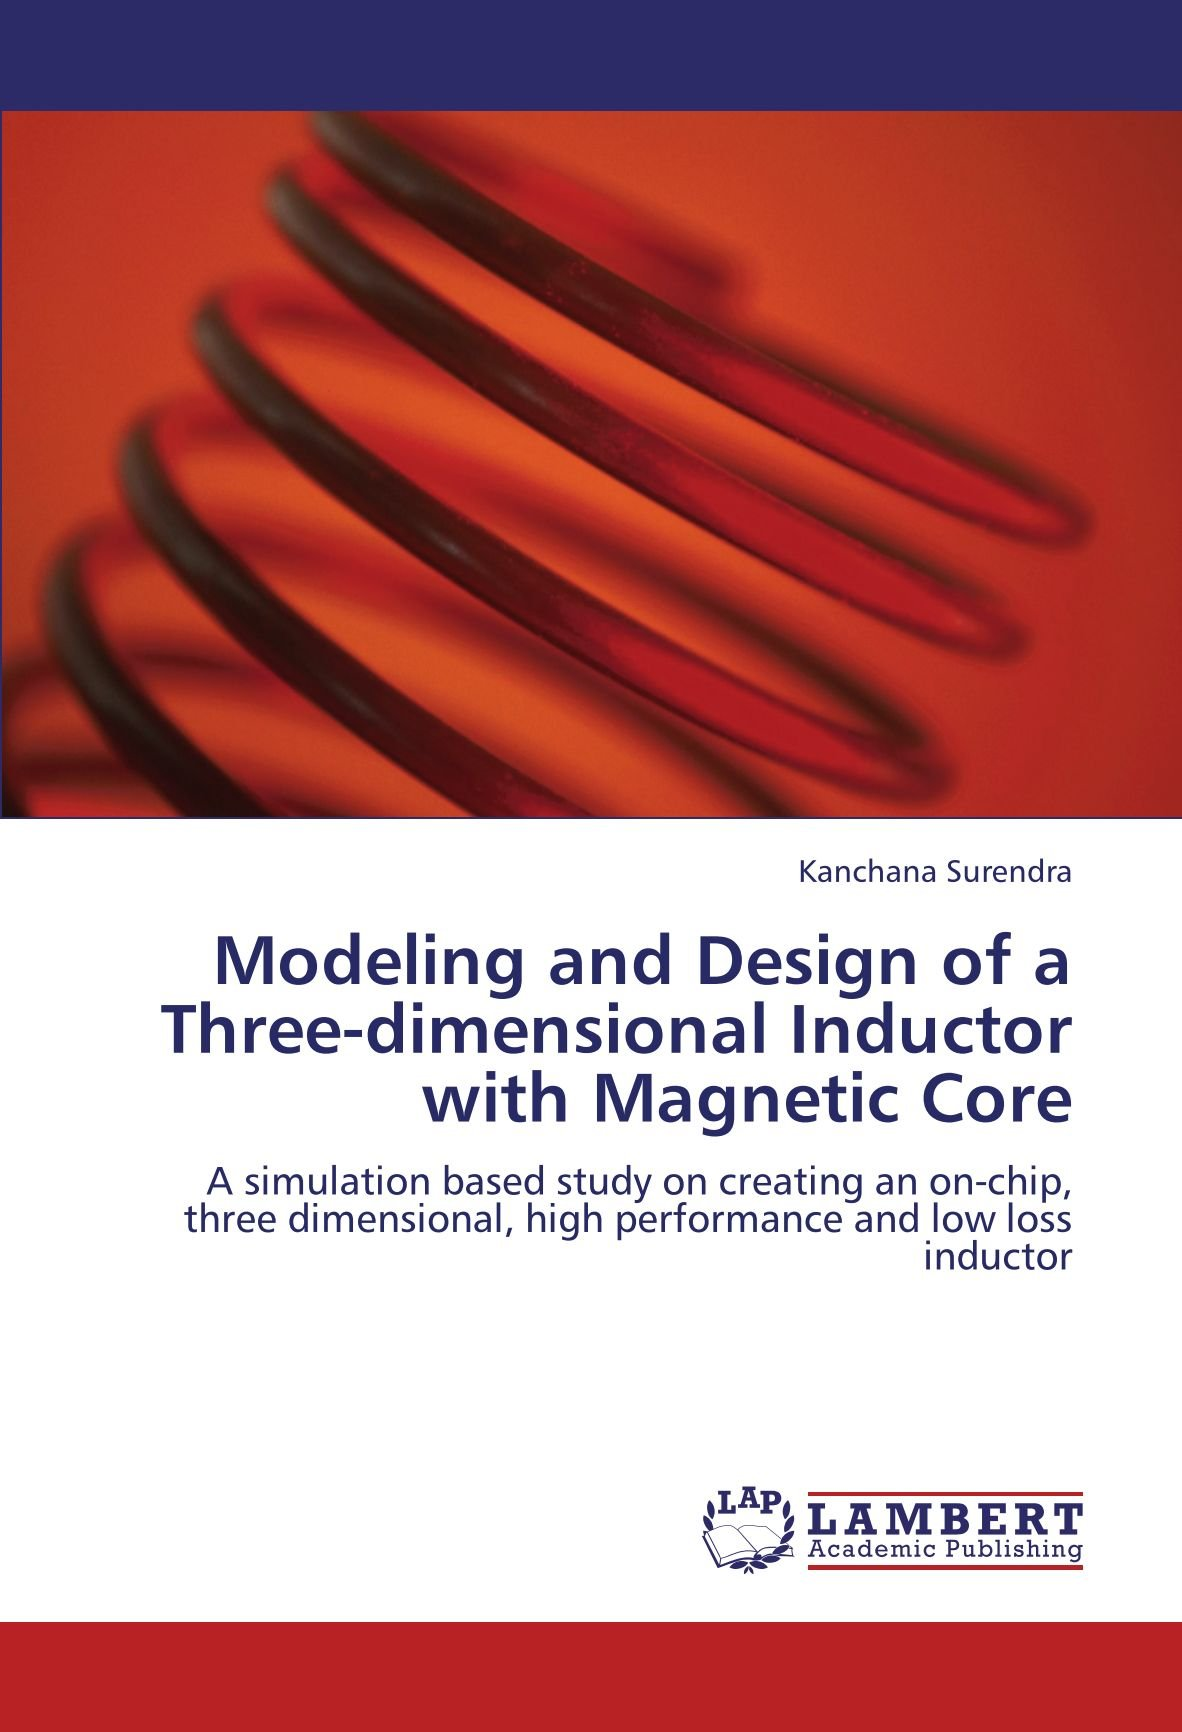 Modeling and Design of a Three-dimensional Inductor with Magnetic Core: A simulation based study on creating an on-chip, three dimensional, high performance and low loss inductor PDF